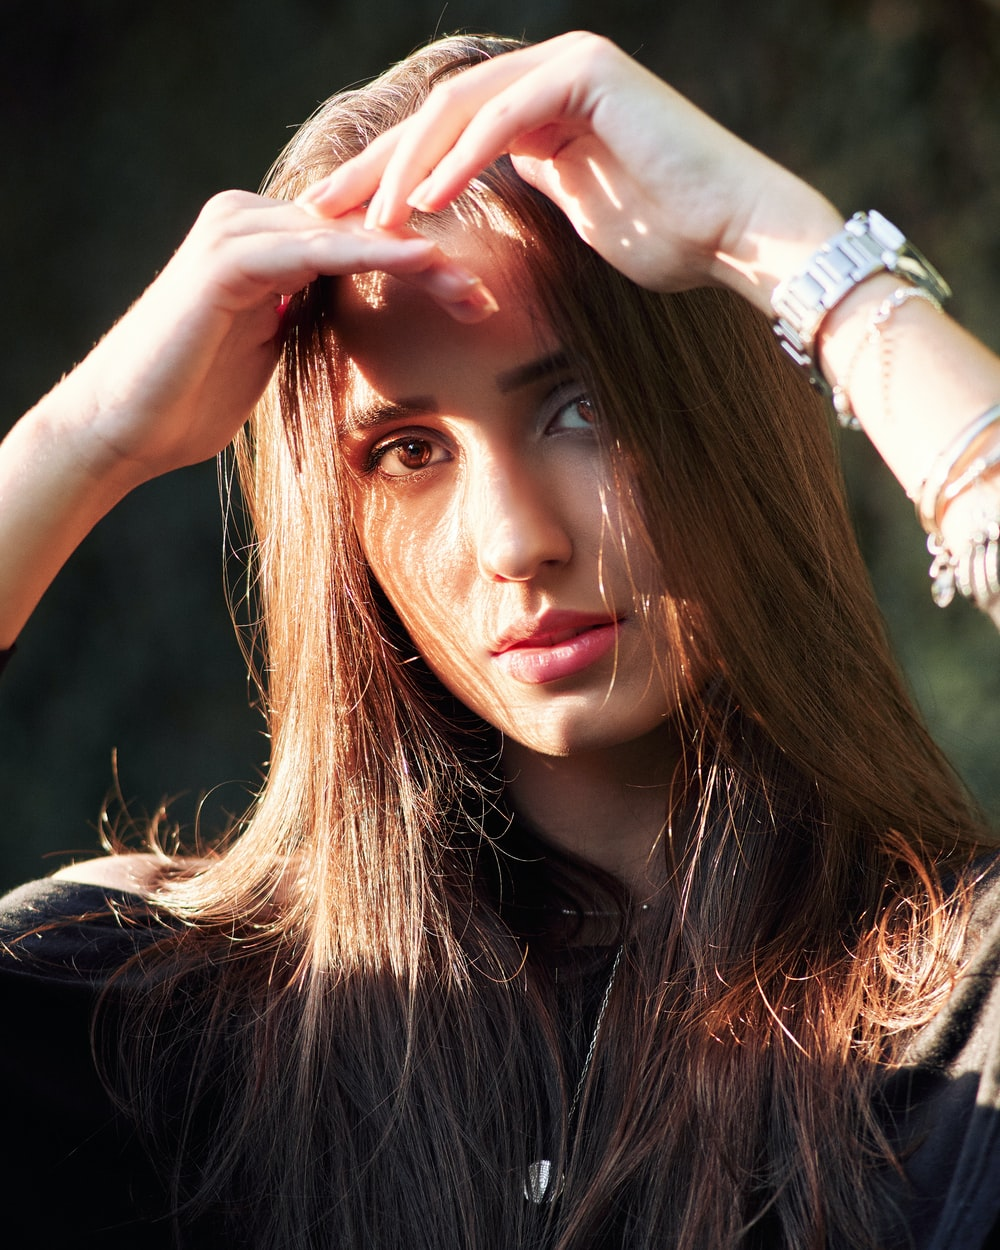 woman wearing black top both hands on forehead covering face from sunlight